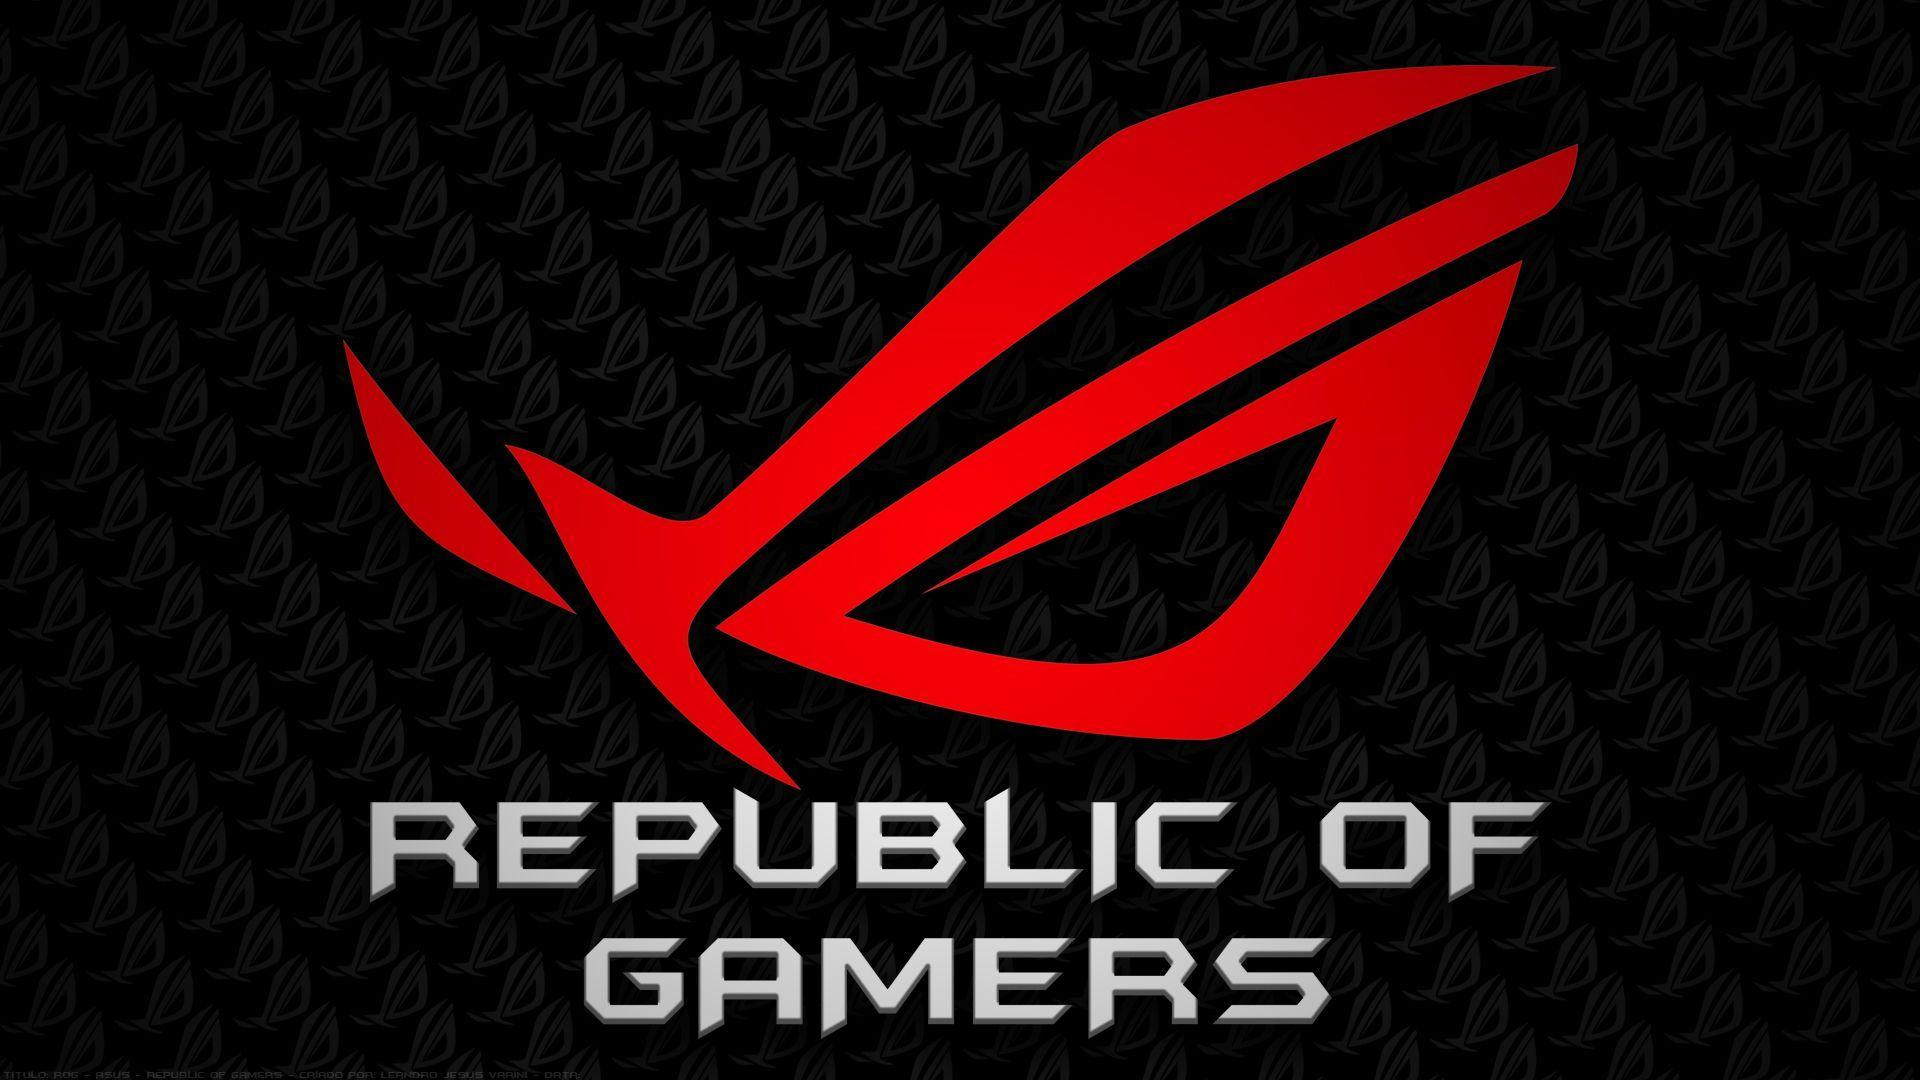 Republic Of Gamers Hd Wallpapers Top Free Republic Of